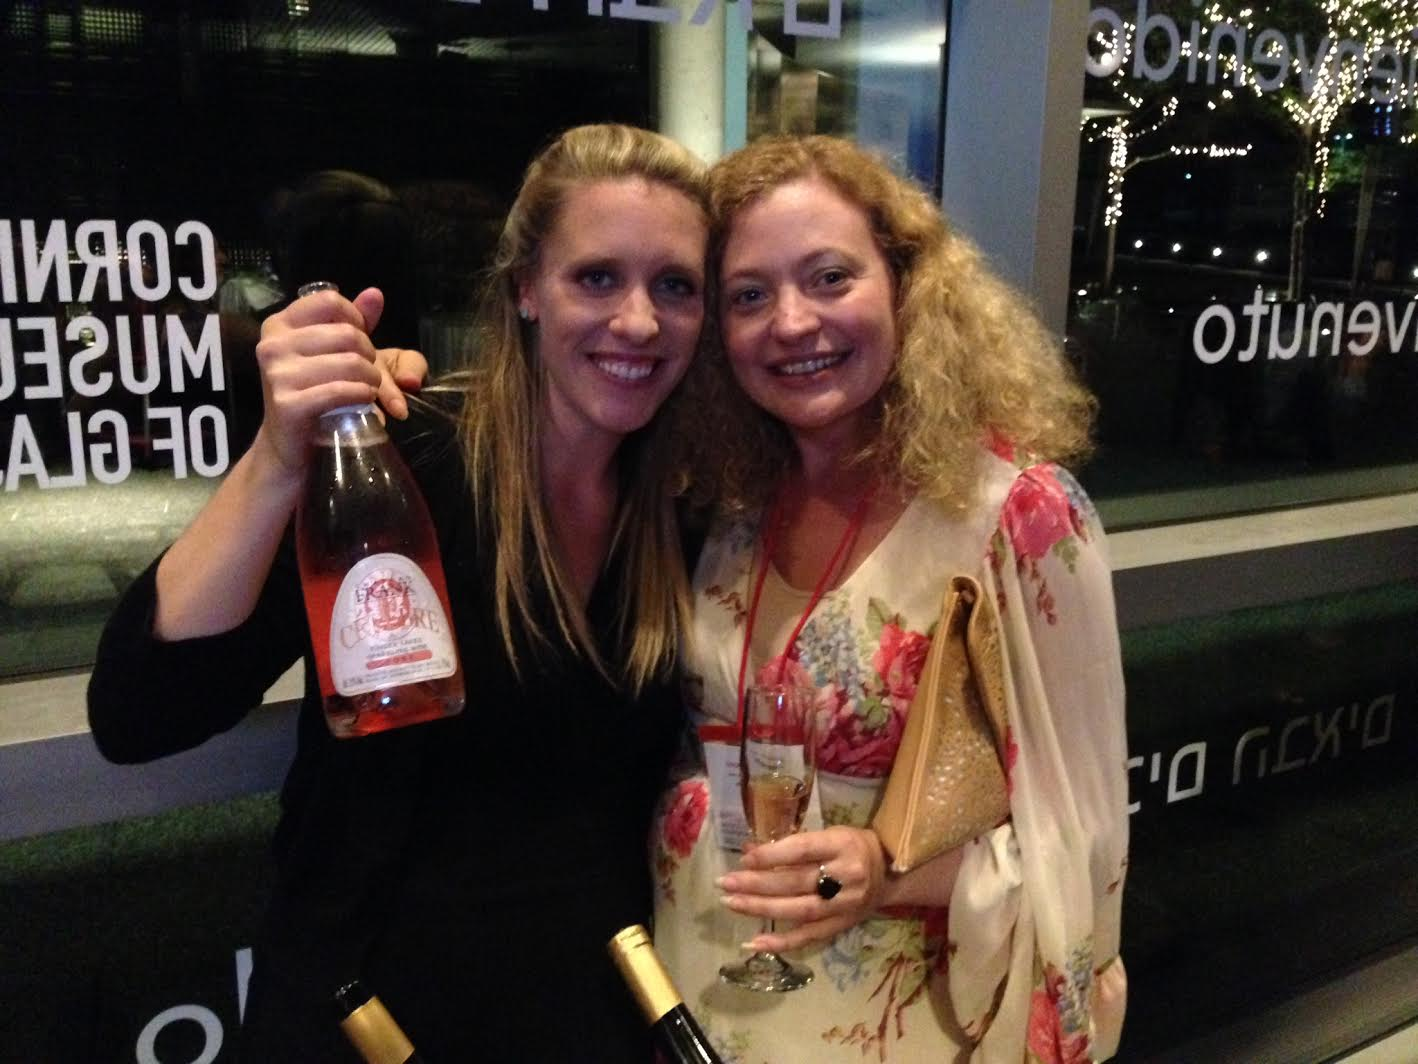 Meaghan Frank and myself at the closing reception of the Wine Bloggers Conference, Corning, NY  photo by Gabriel Manzo